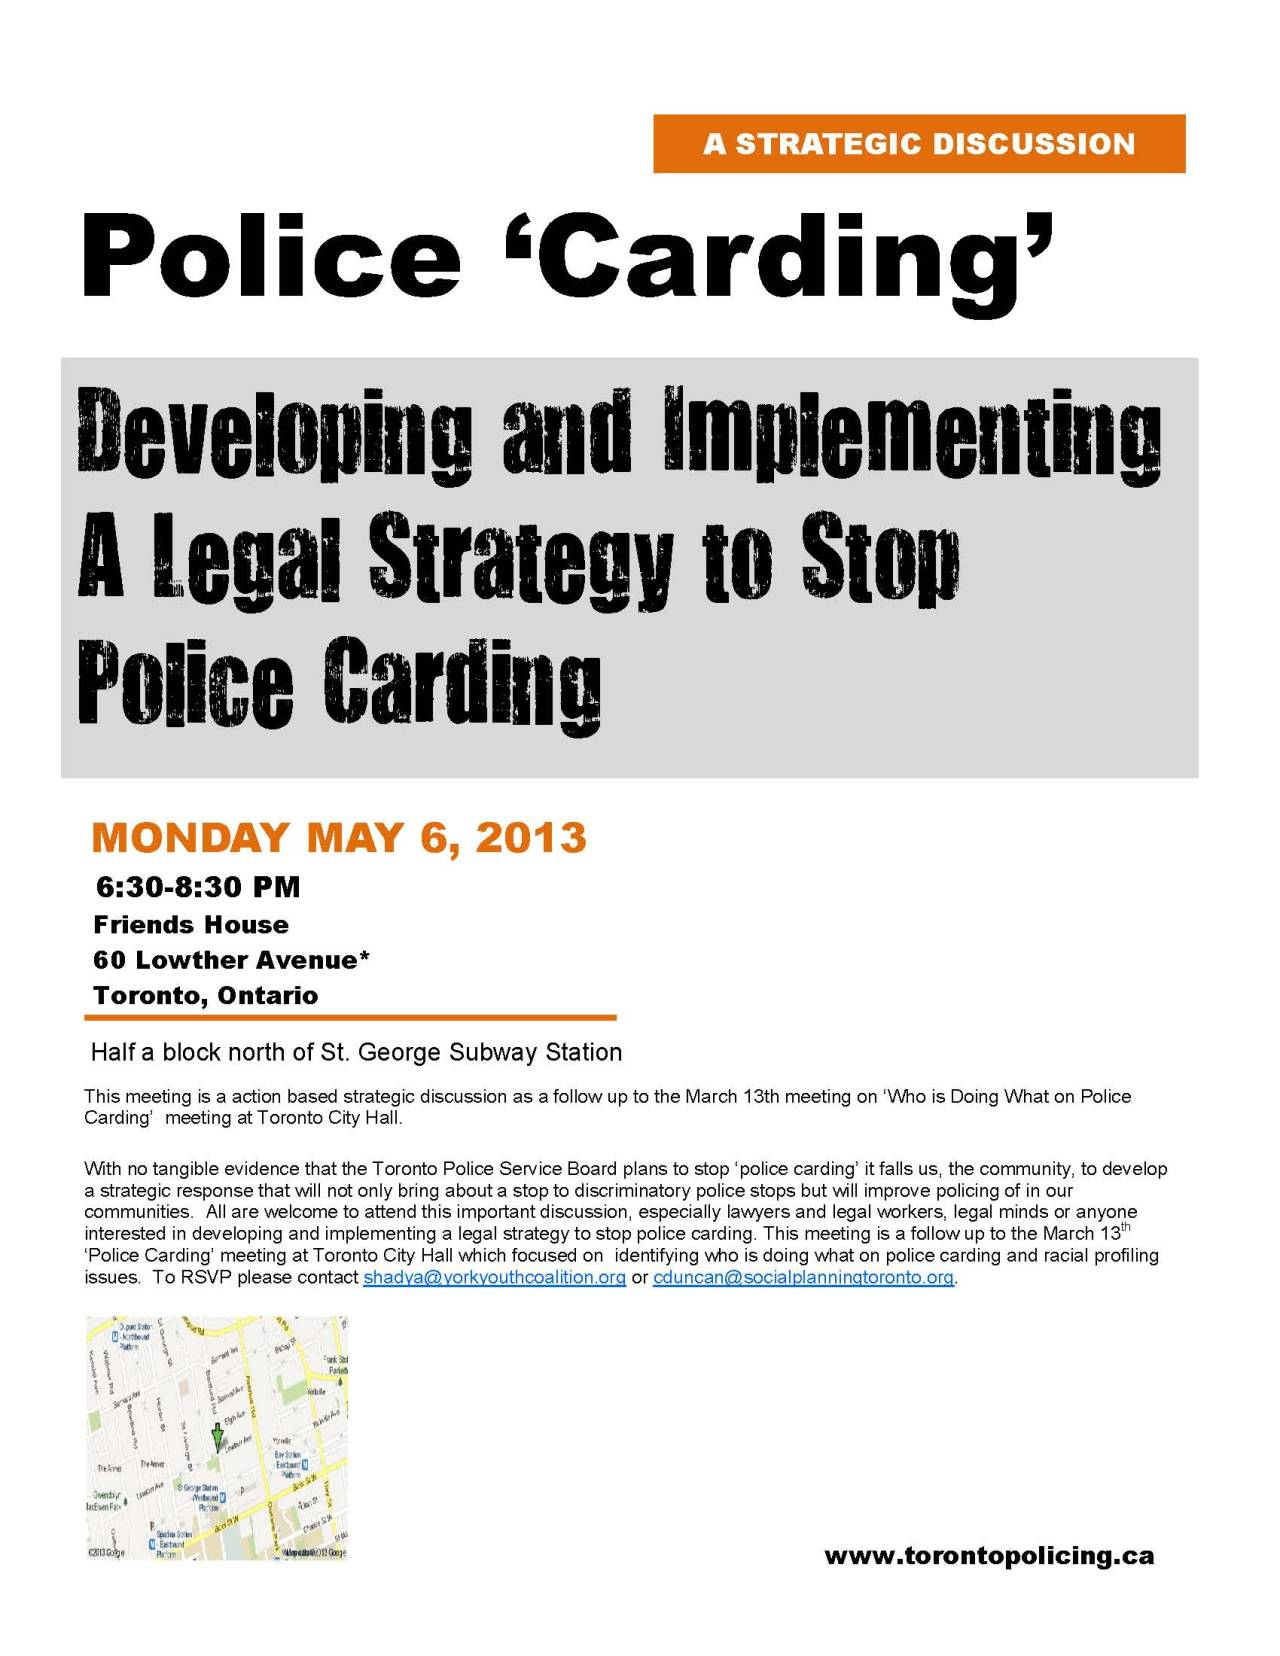 'Police Carding': Developing and Implementing a legal strategy to stop police carding